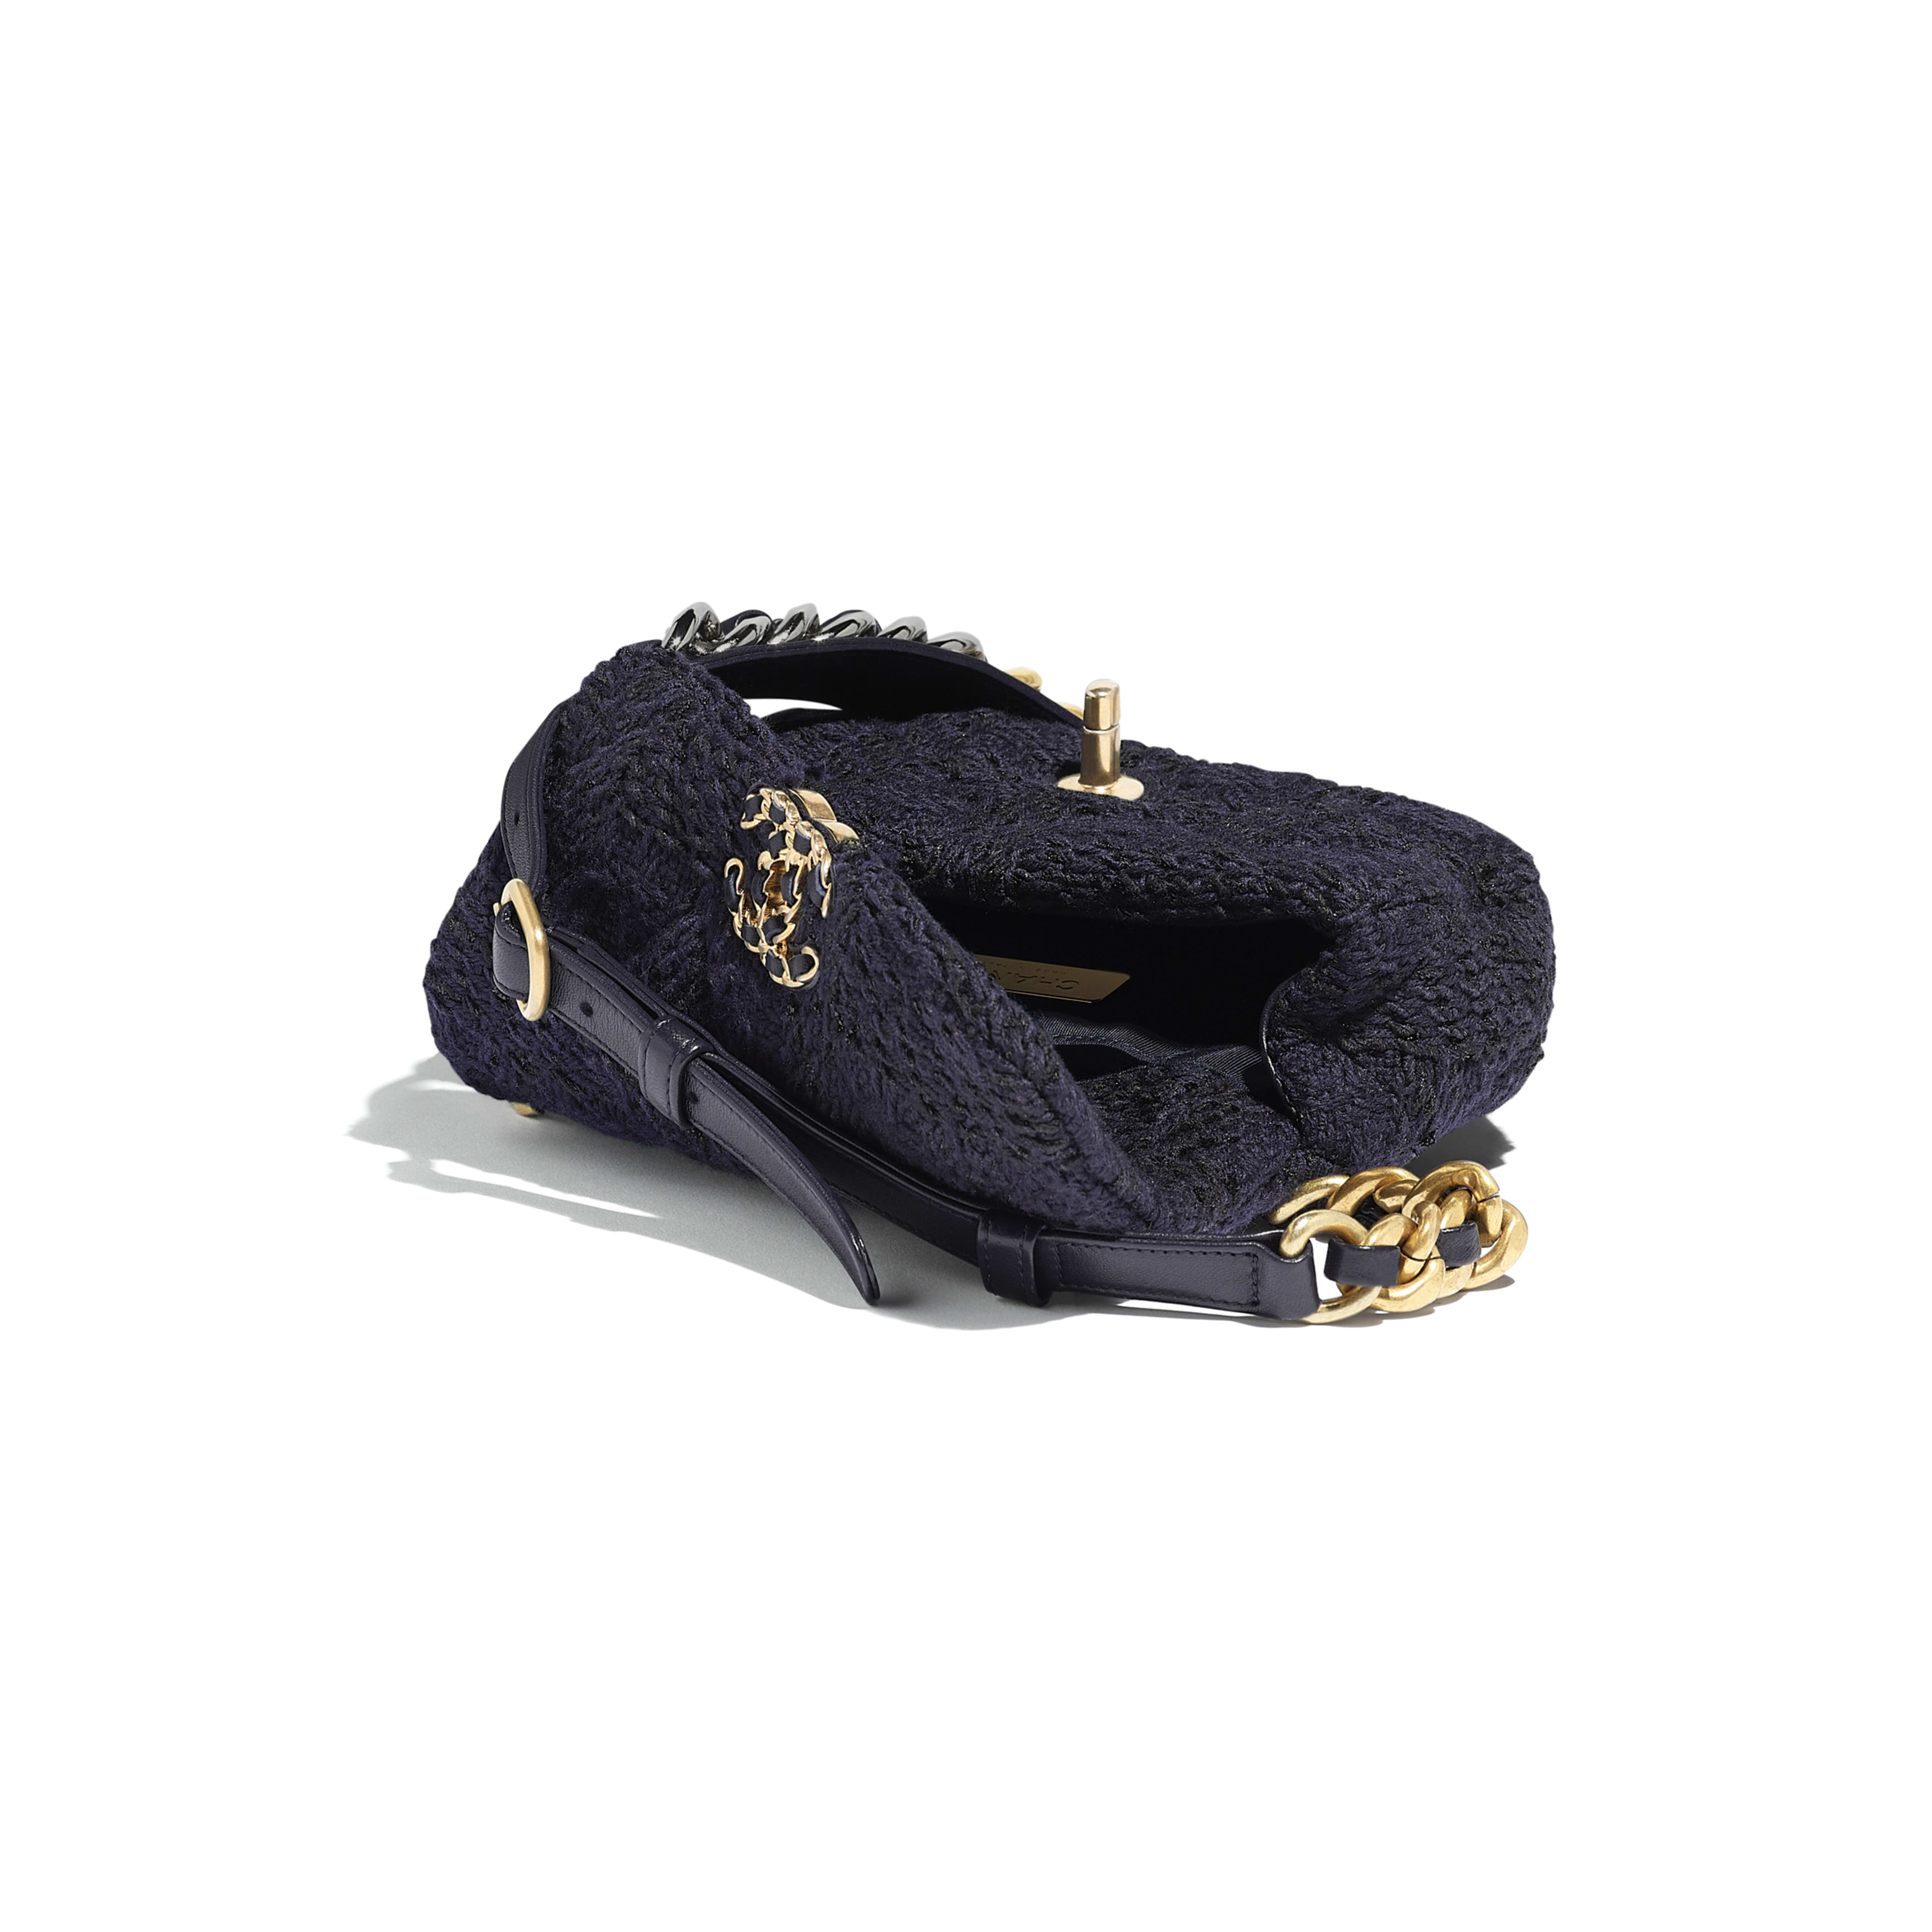 CHANEL 19 Waist Bag - Navy Blue & Black - Wool Tweed, Gold-Tone, Silver-Tone & Ruthenium-Finish Metal - Other view - see full sized version